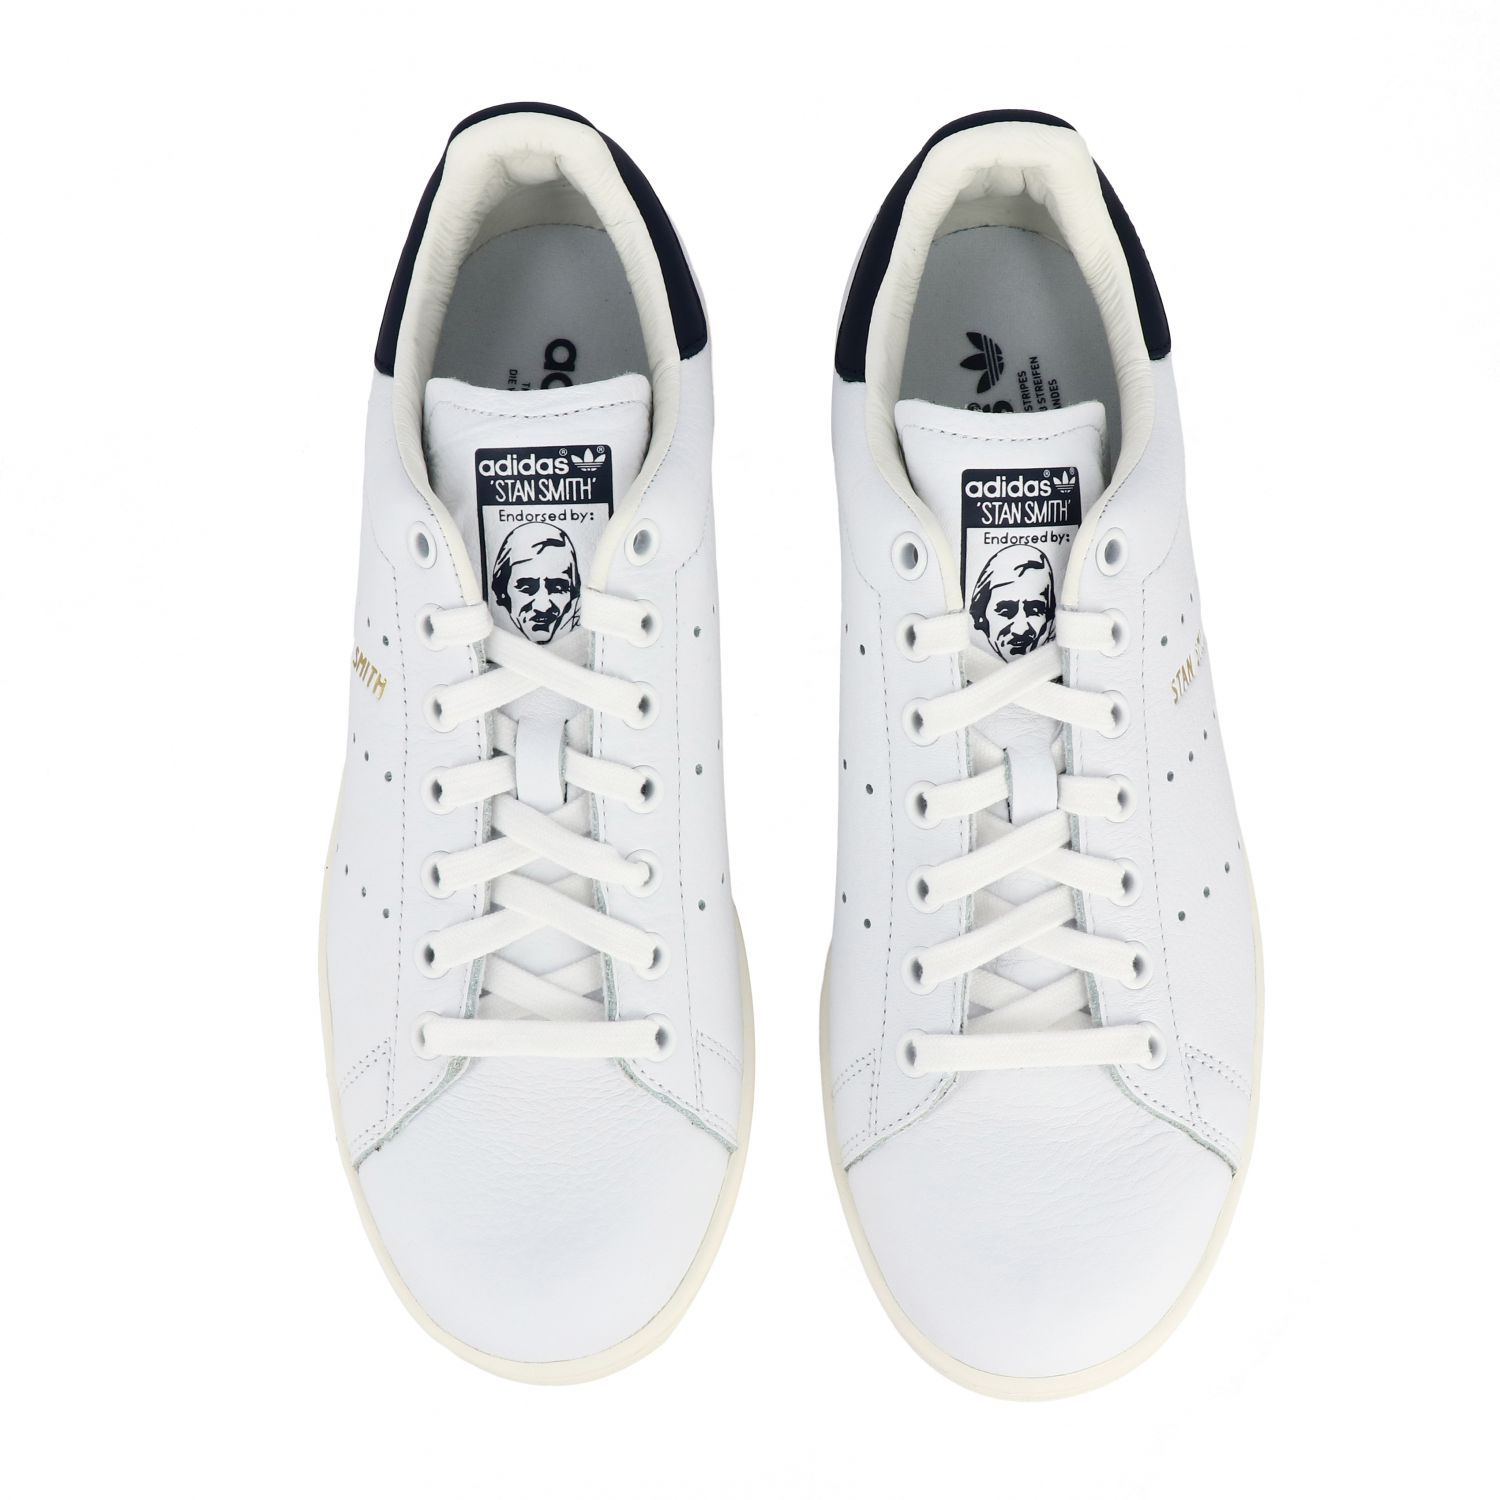 Sneakers Adidas Originals: Stan smith Adidas Originals leather sneakers white 3